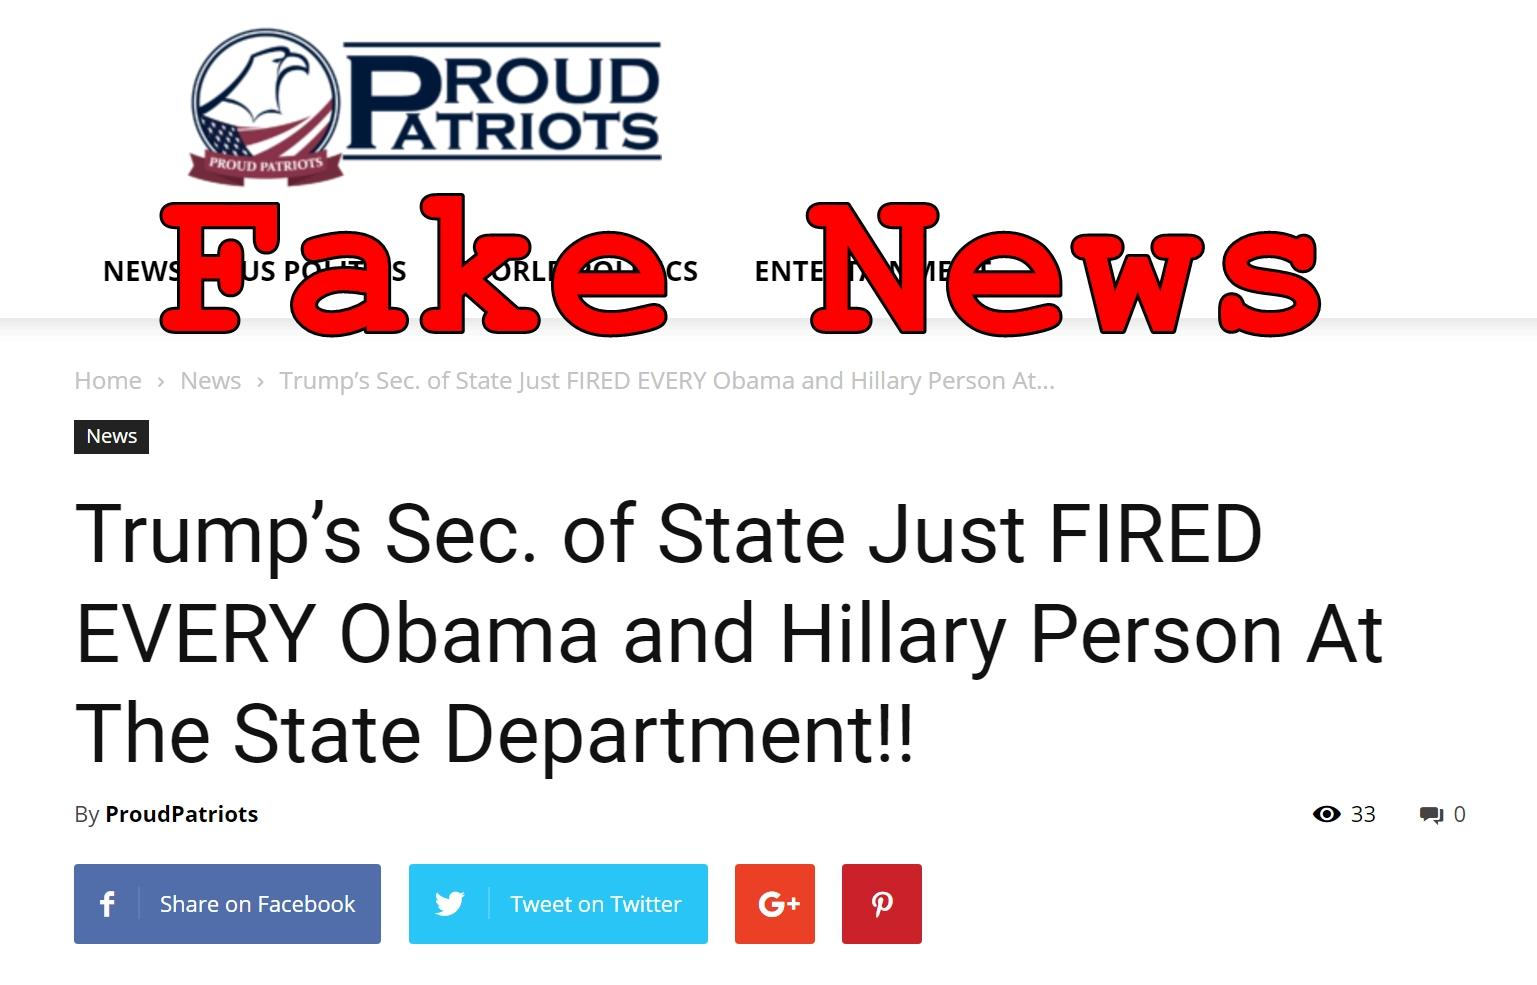 Fake News: Trump Sec. of State Did NOT Just Fire Every Obama and Hillary Person At The State Department